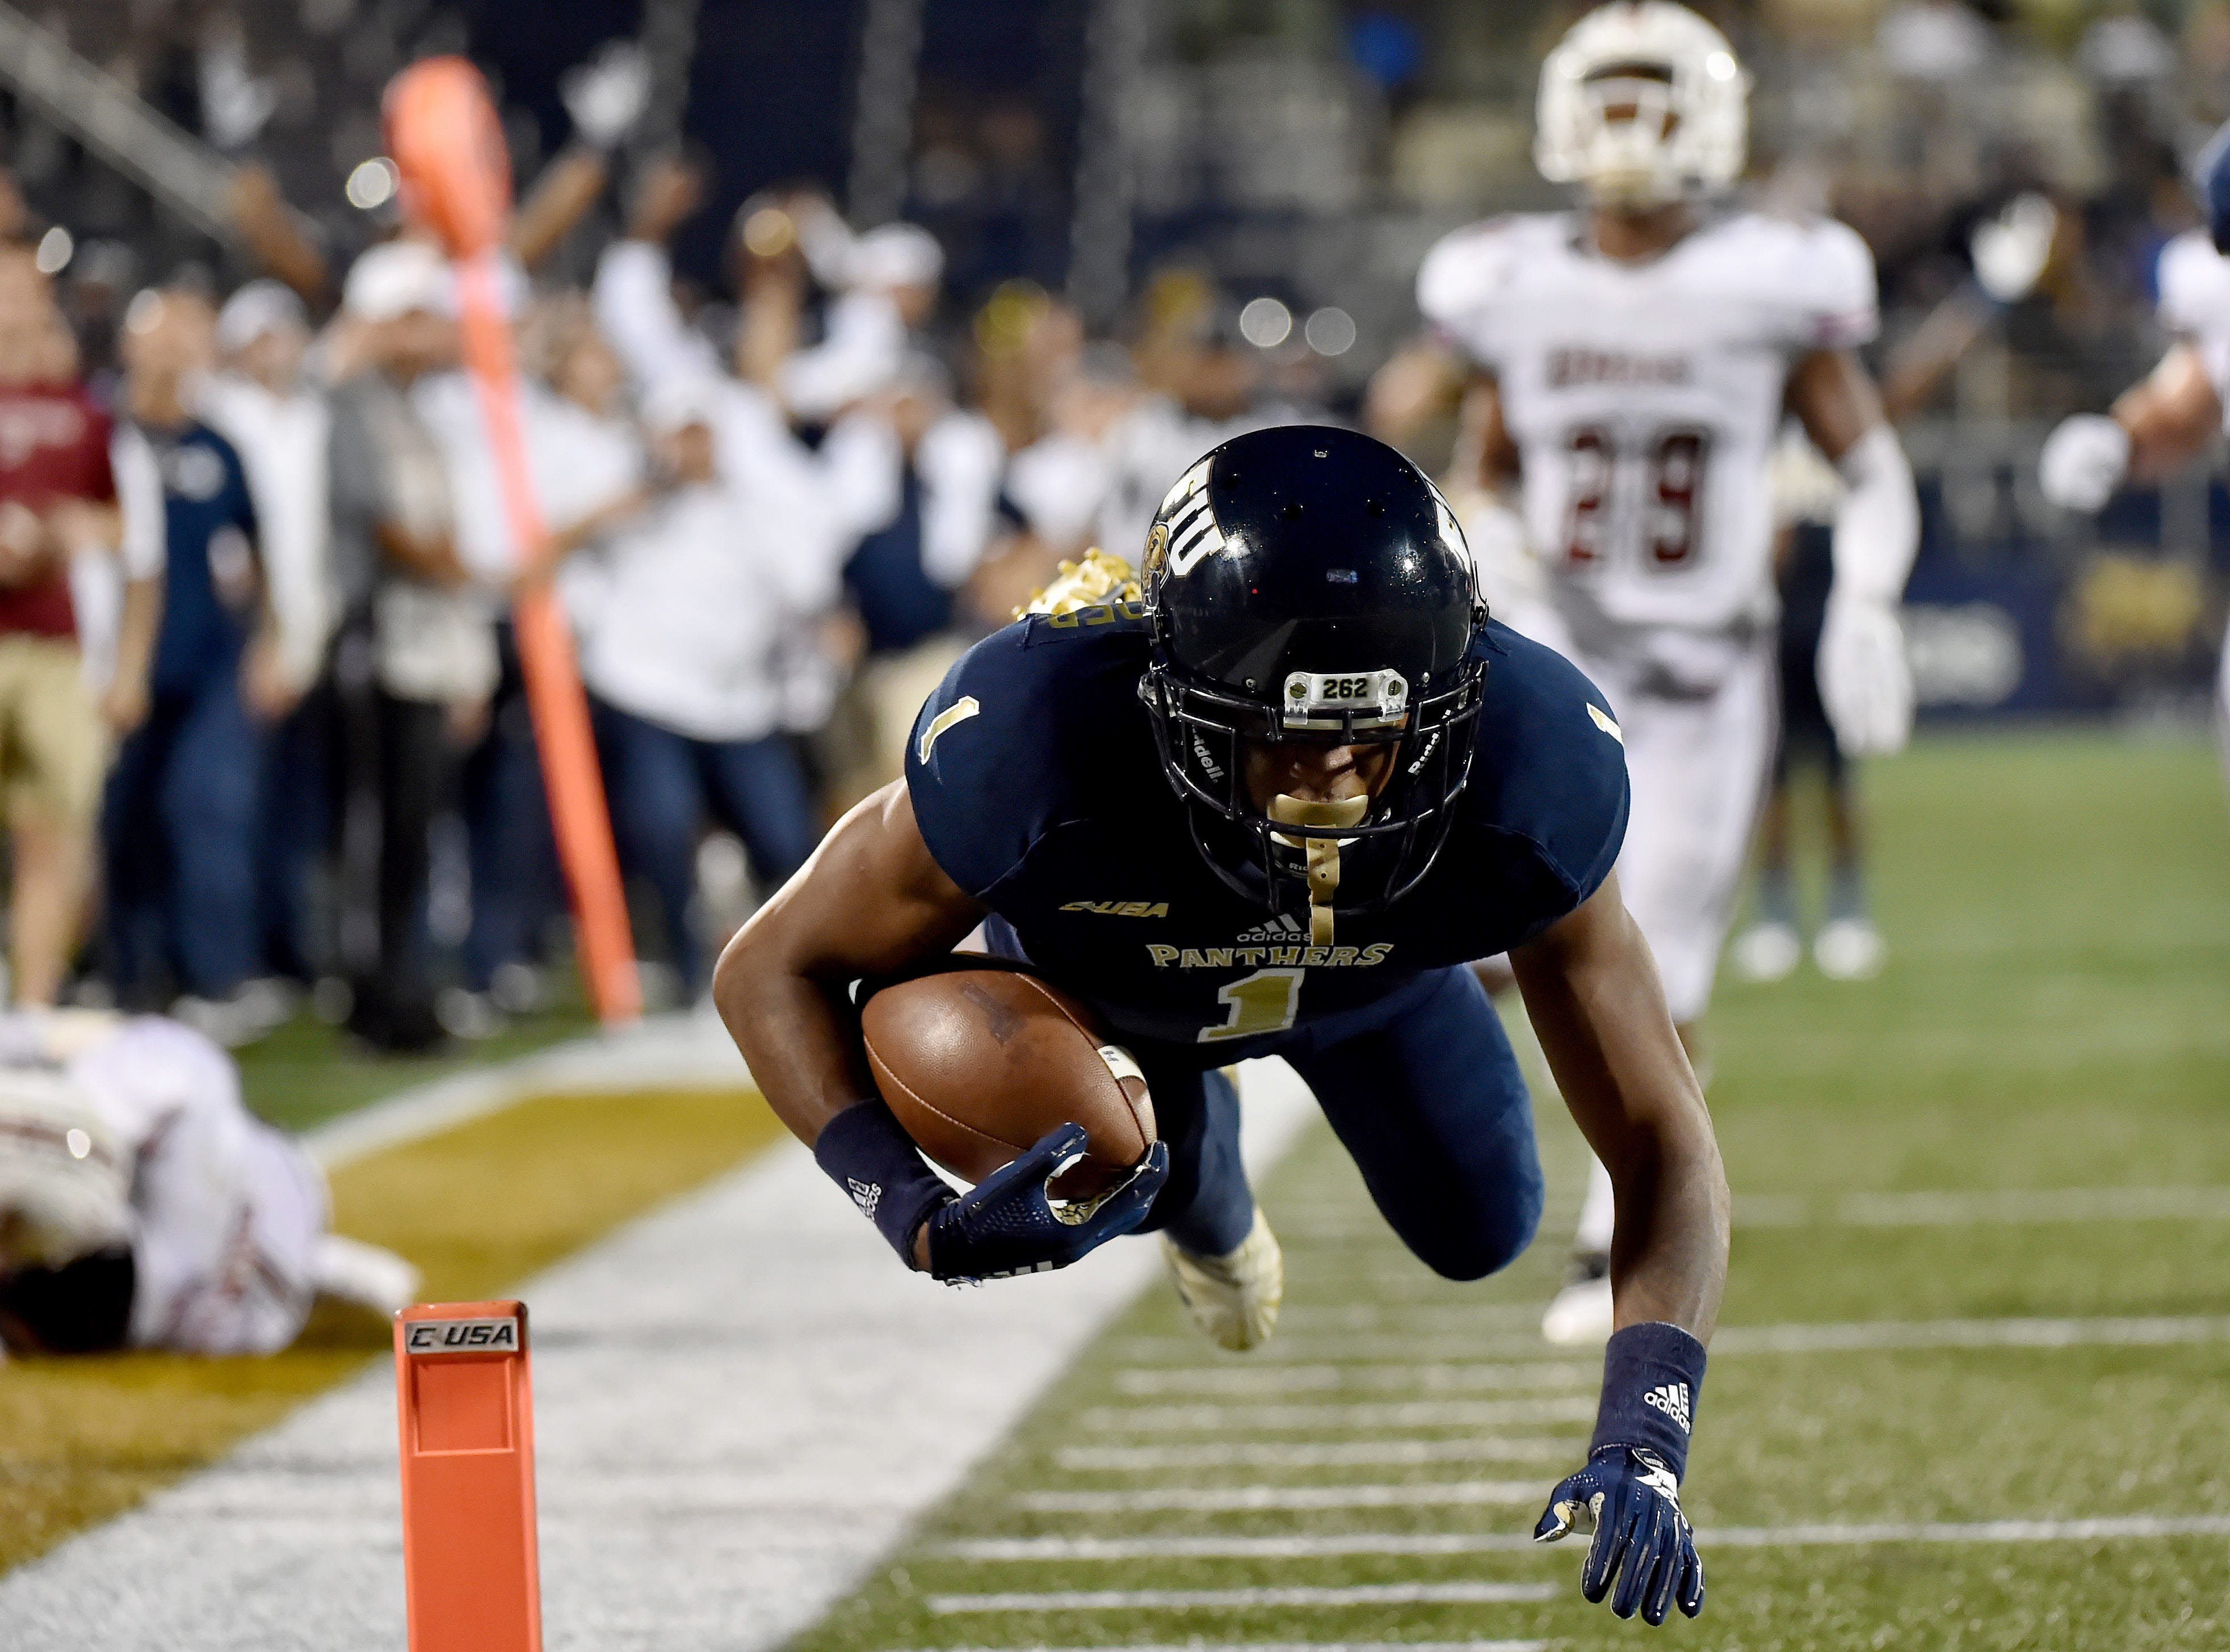 FIU Golden Panthers wide receiver Maurice Alexander (1) dives in for a touchdown against the  Massachusetts Minutemen during the second half at Riccardo Silva Stadium.